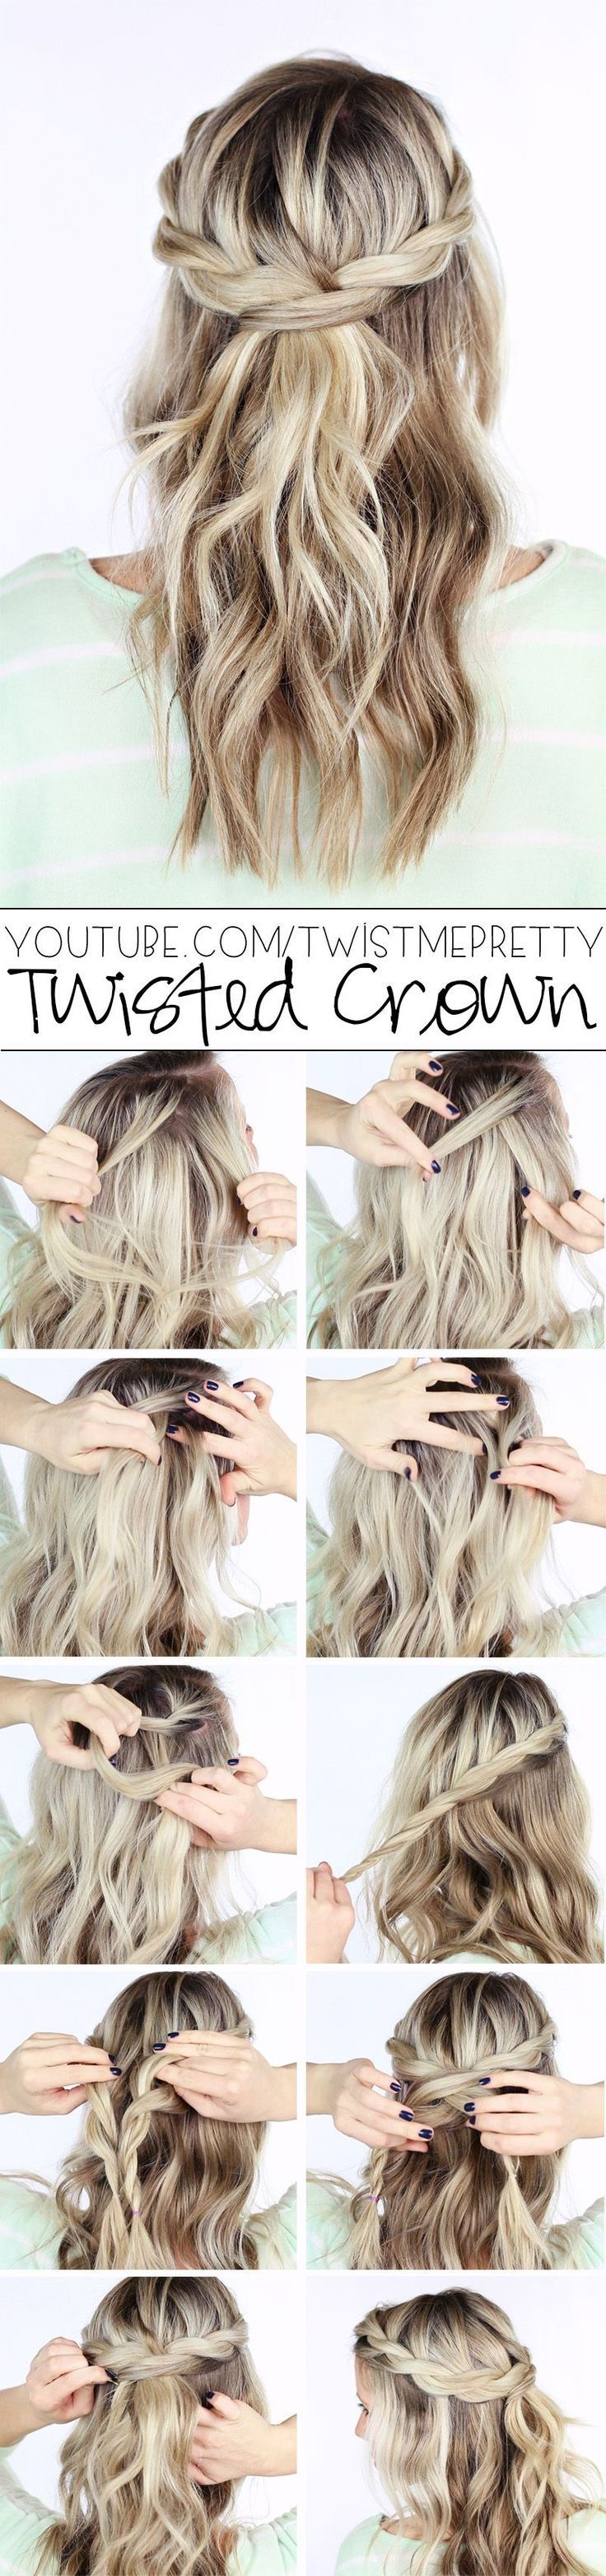 17 Hair Tutorials You Can Totally DIY | Hair style, Short hairstyle ...